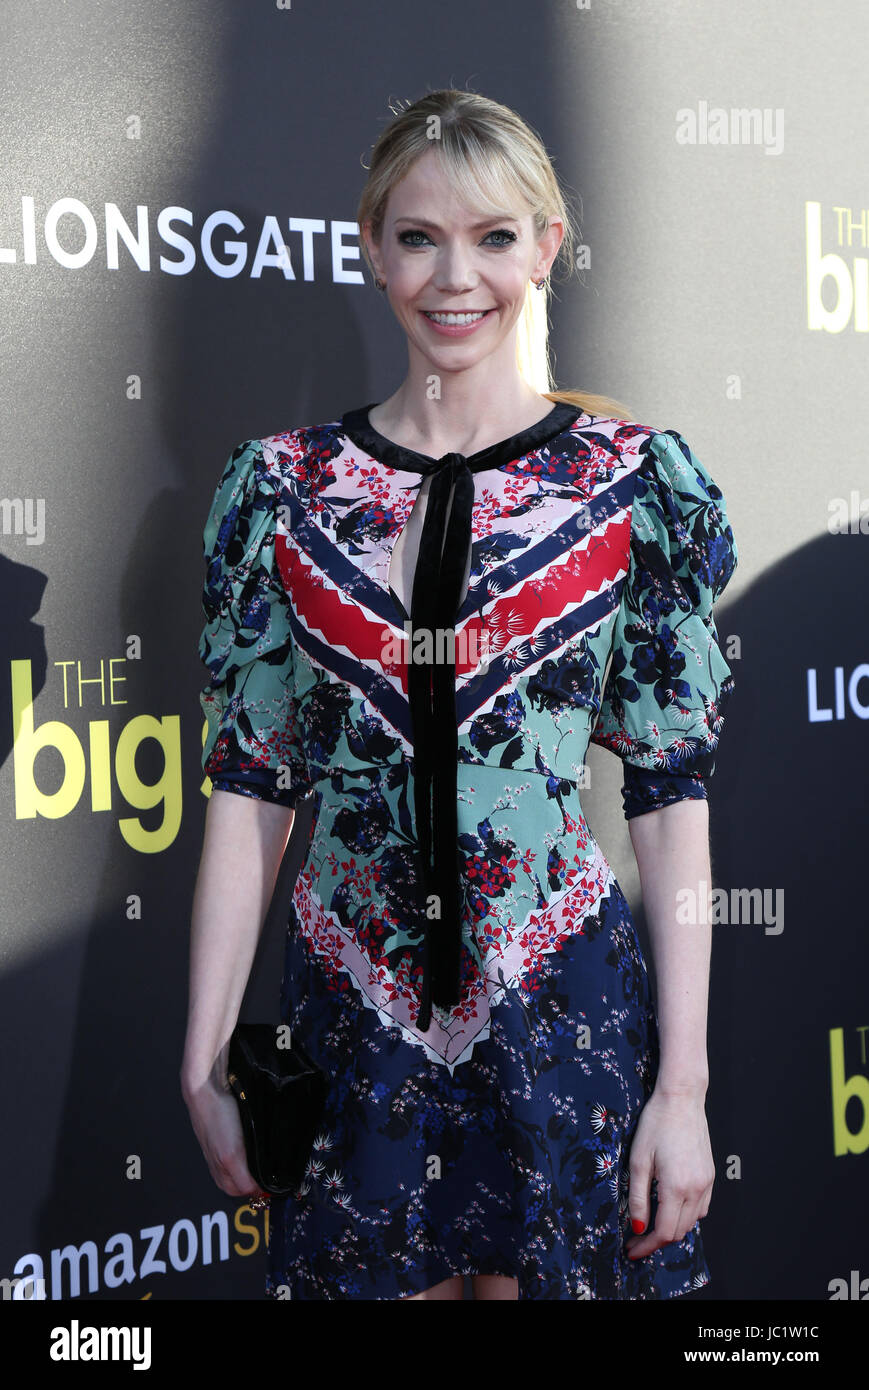 Riki lindhome the big sick premiere in los angeles new picture